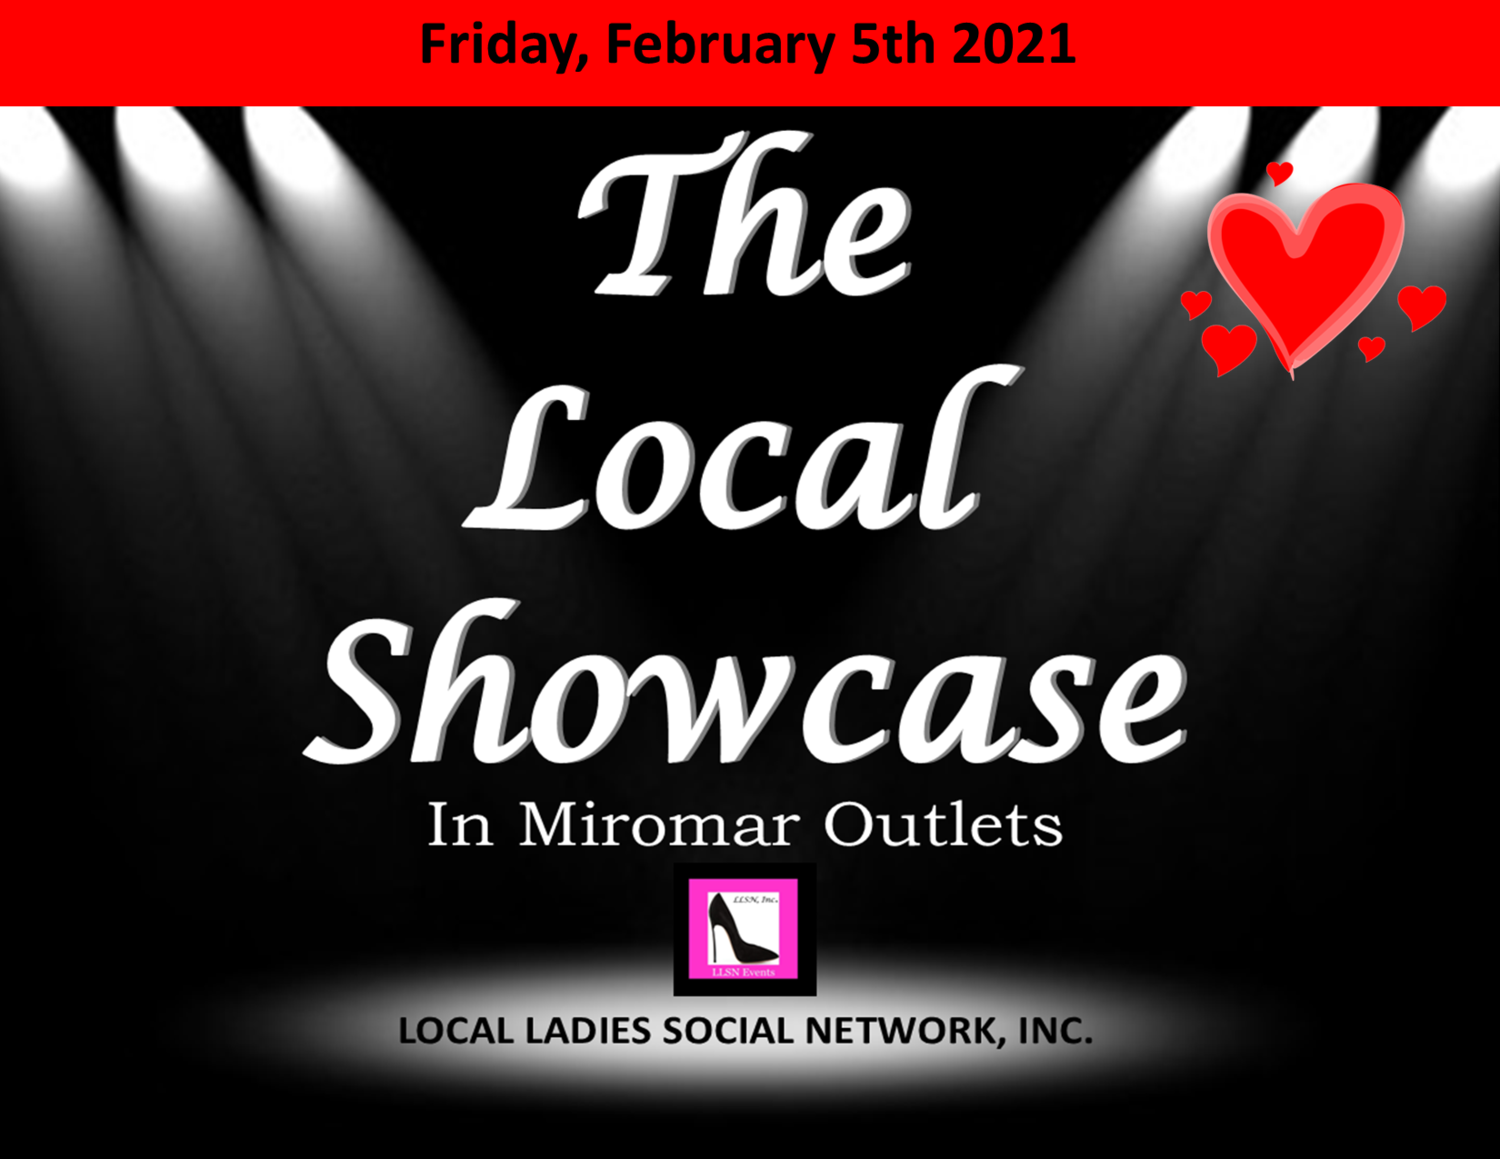 Friday, February 5th, 2021 11am-7pm